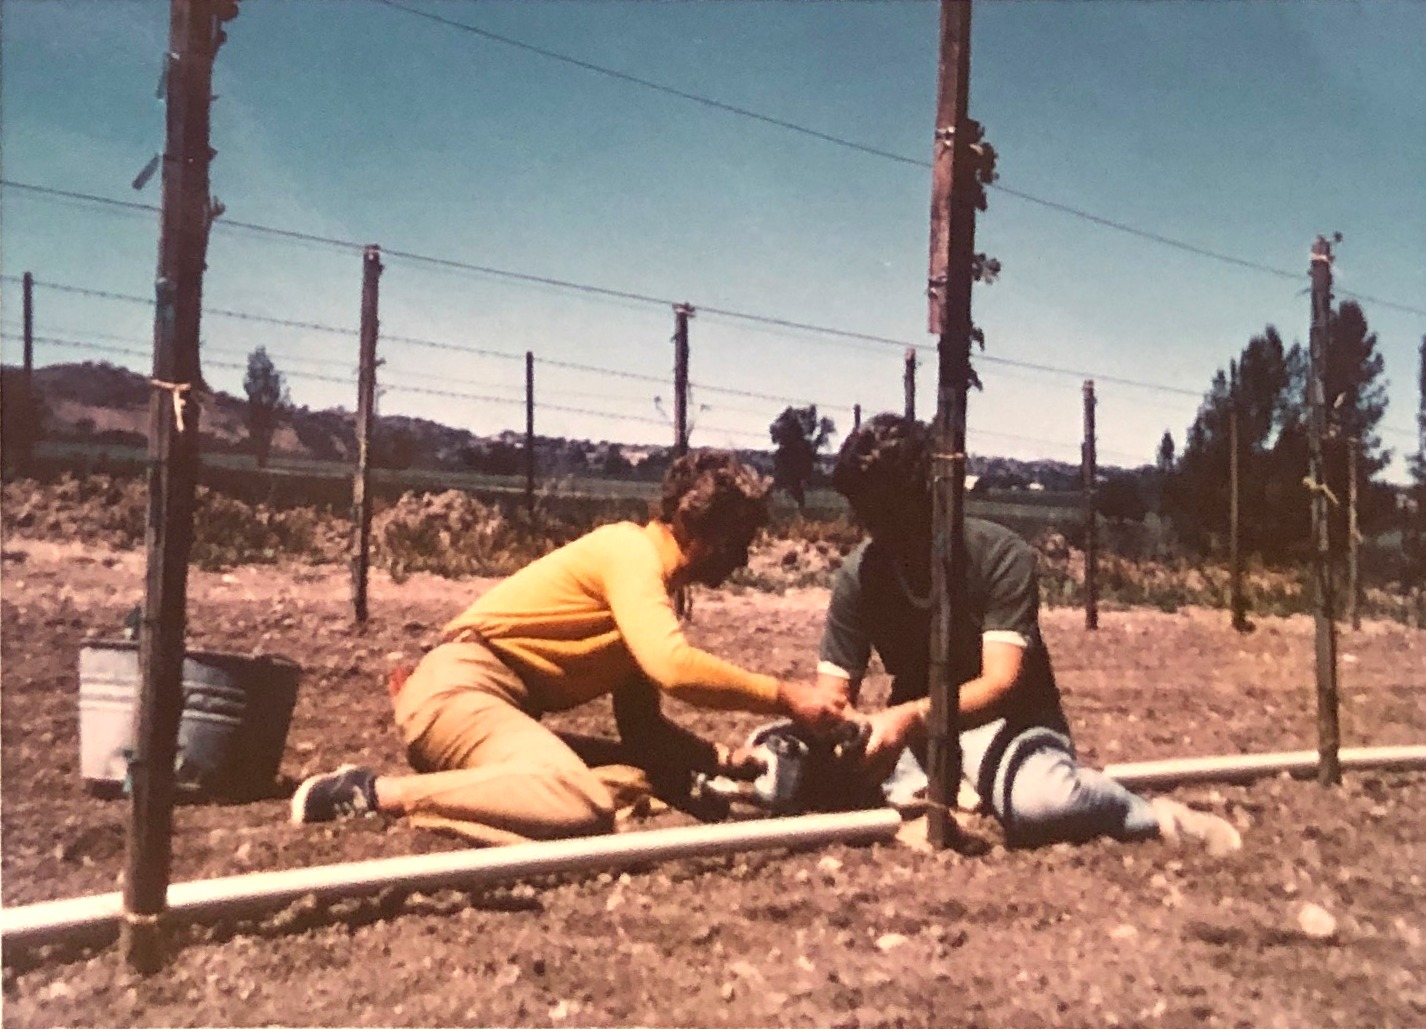 Charlotte Young and Claire Bettencourt planting the first vines in 1971.